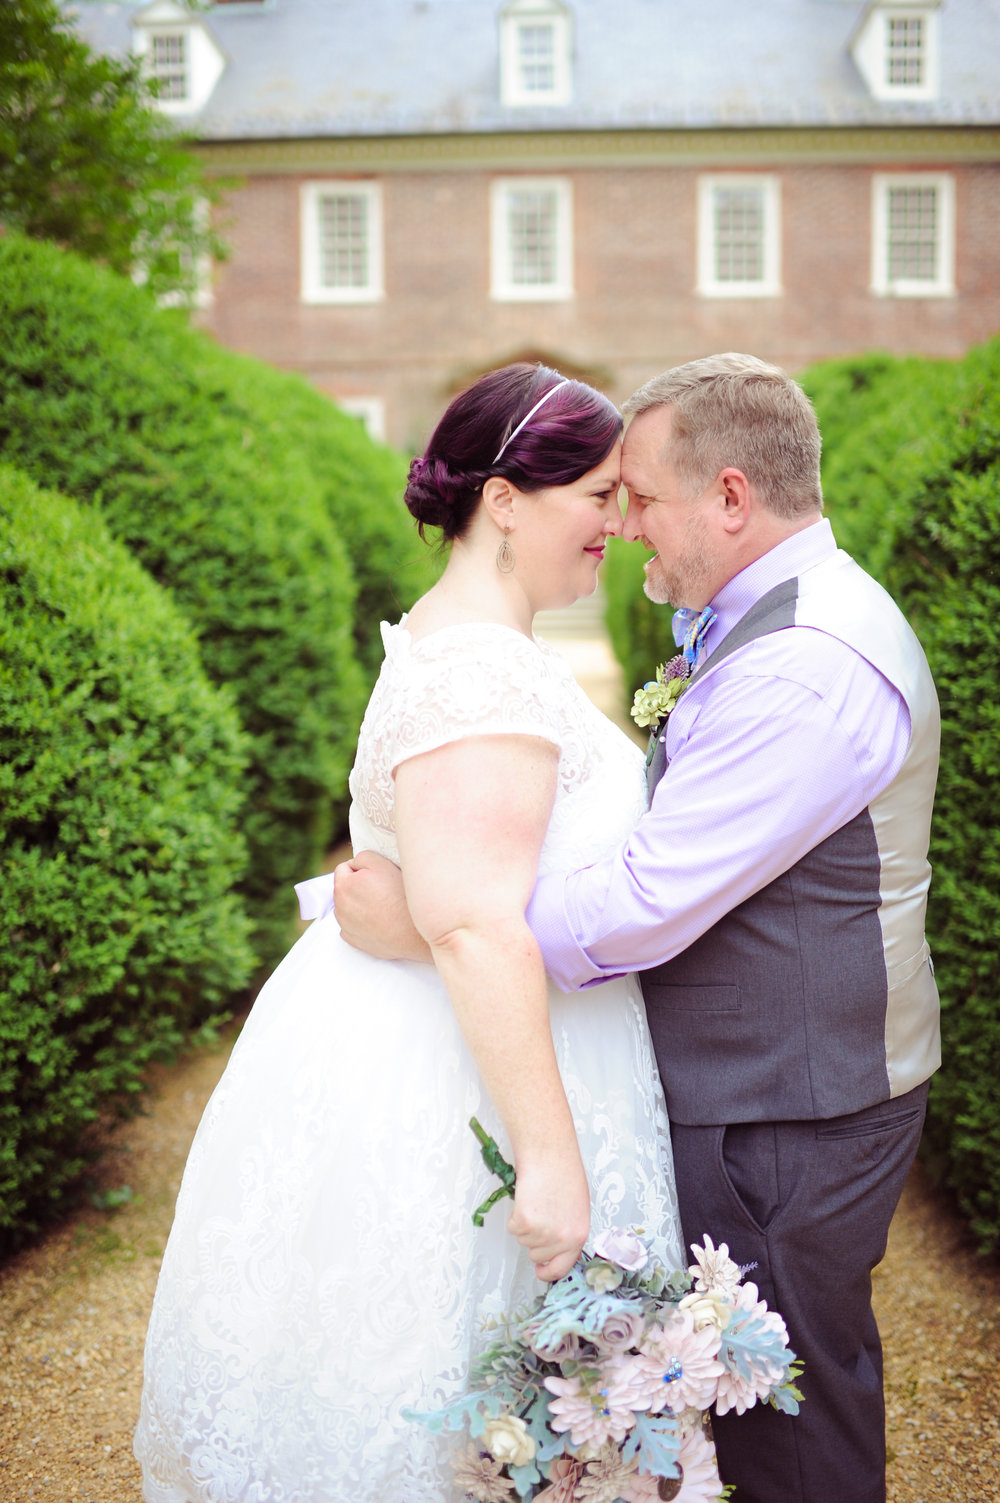 KlineWedding05.27.17-118.jpg